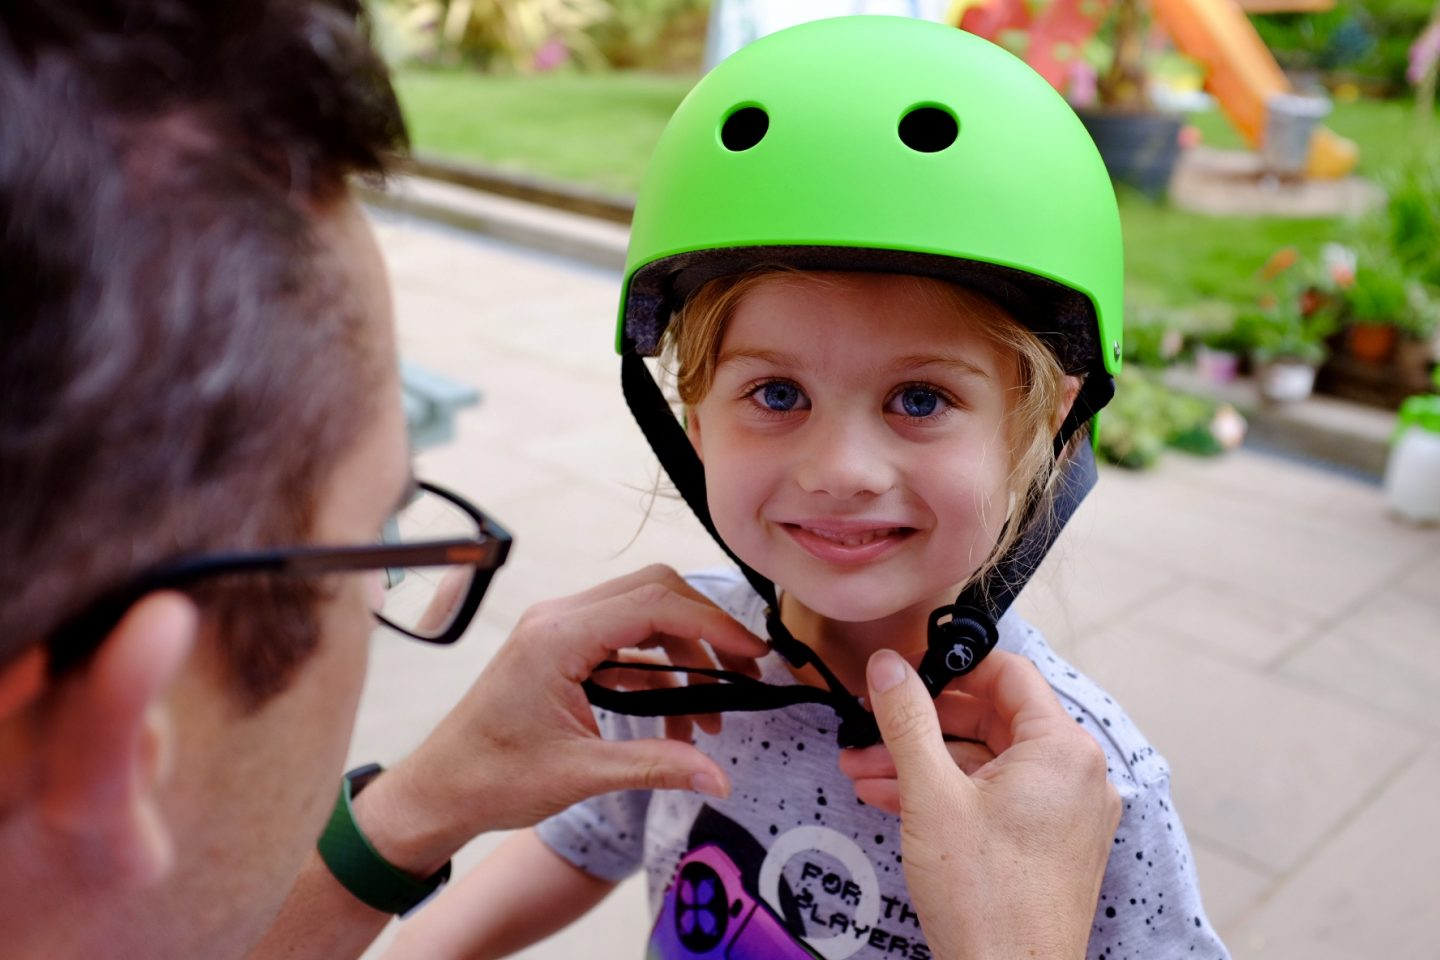 girl with a green SFR Scooter helmet